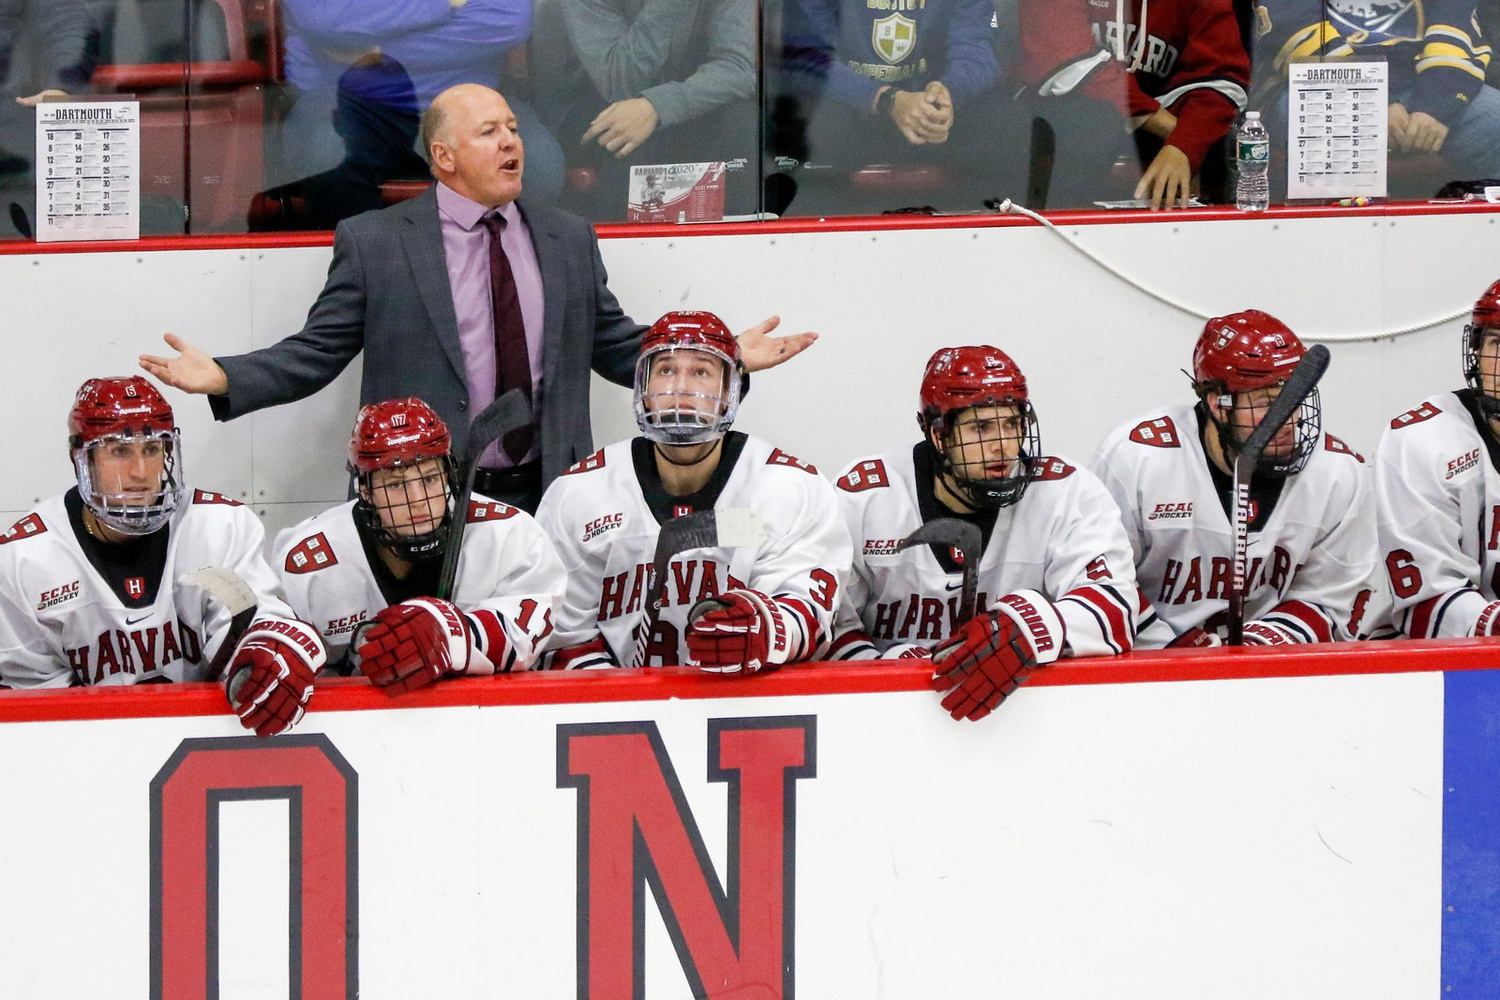 Harvard played its share of high-profile games in 2019-2020. Unfortunately for coach Donato and crew, the Crimson did not emerge victorious from many of these matchups.